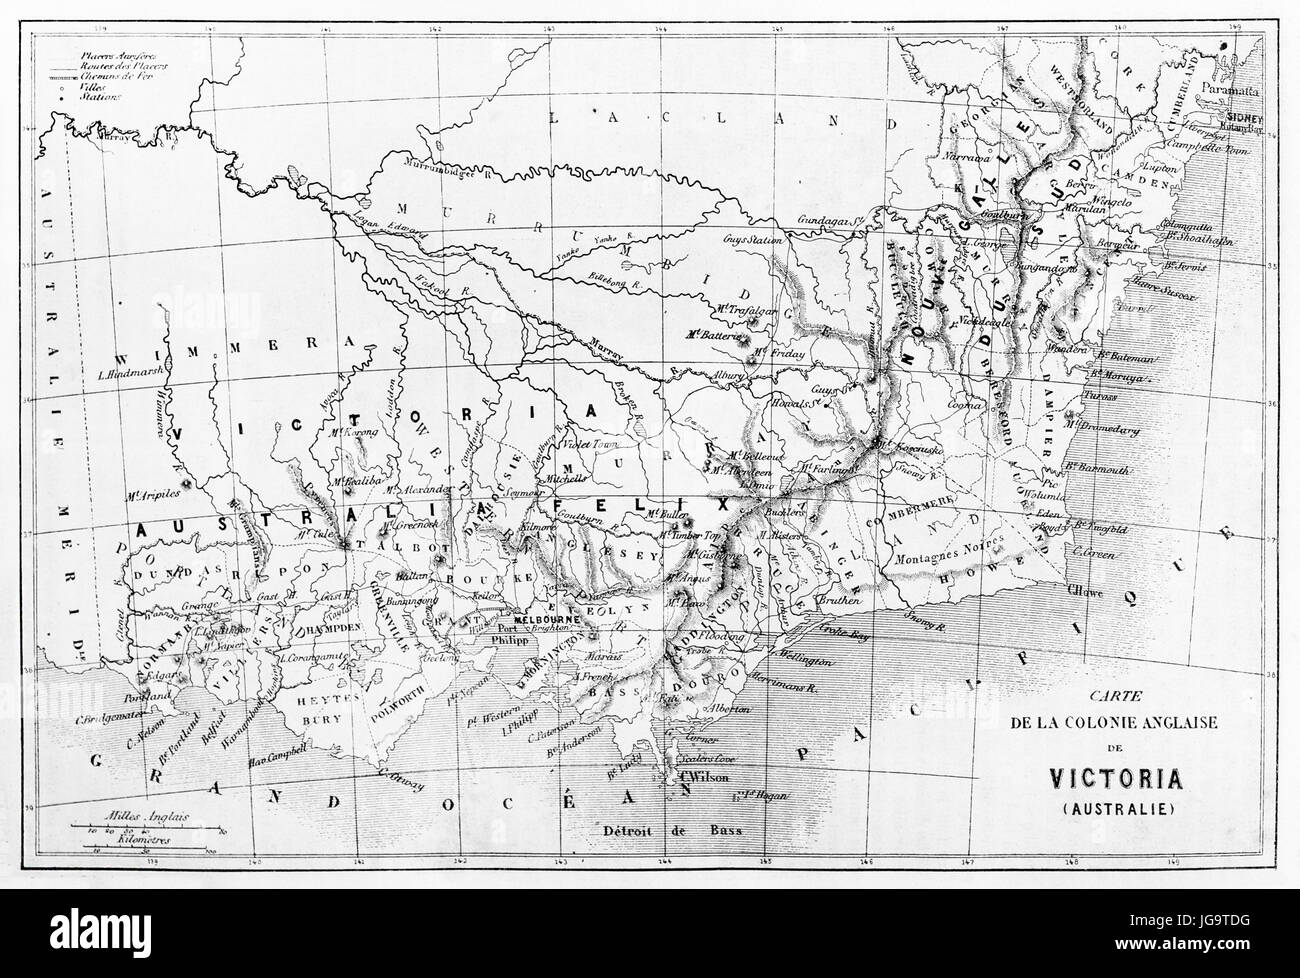 Old map of Victoria colony, Australia. Created by Erhard and Bonaparte, published on Le Tour du Monde, Paris, 1861 - Stock Image